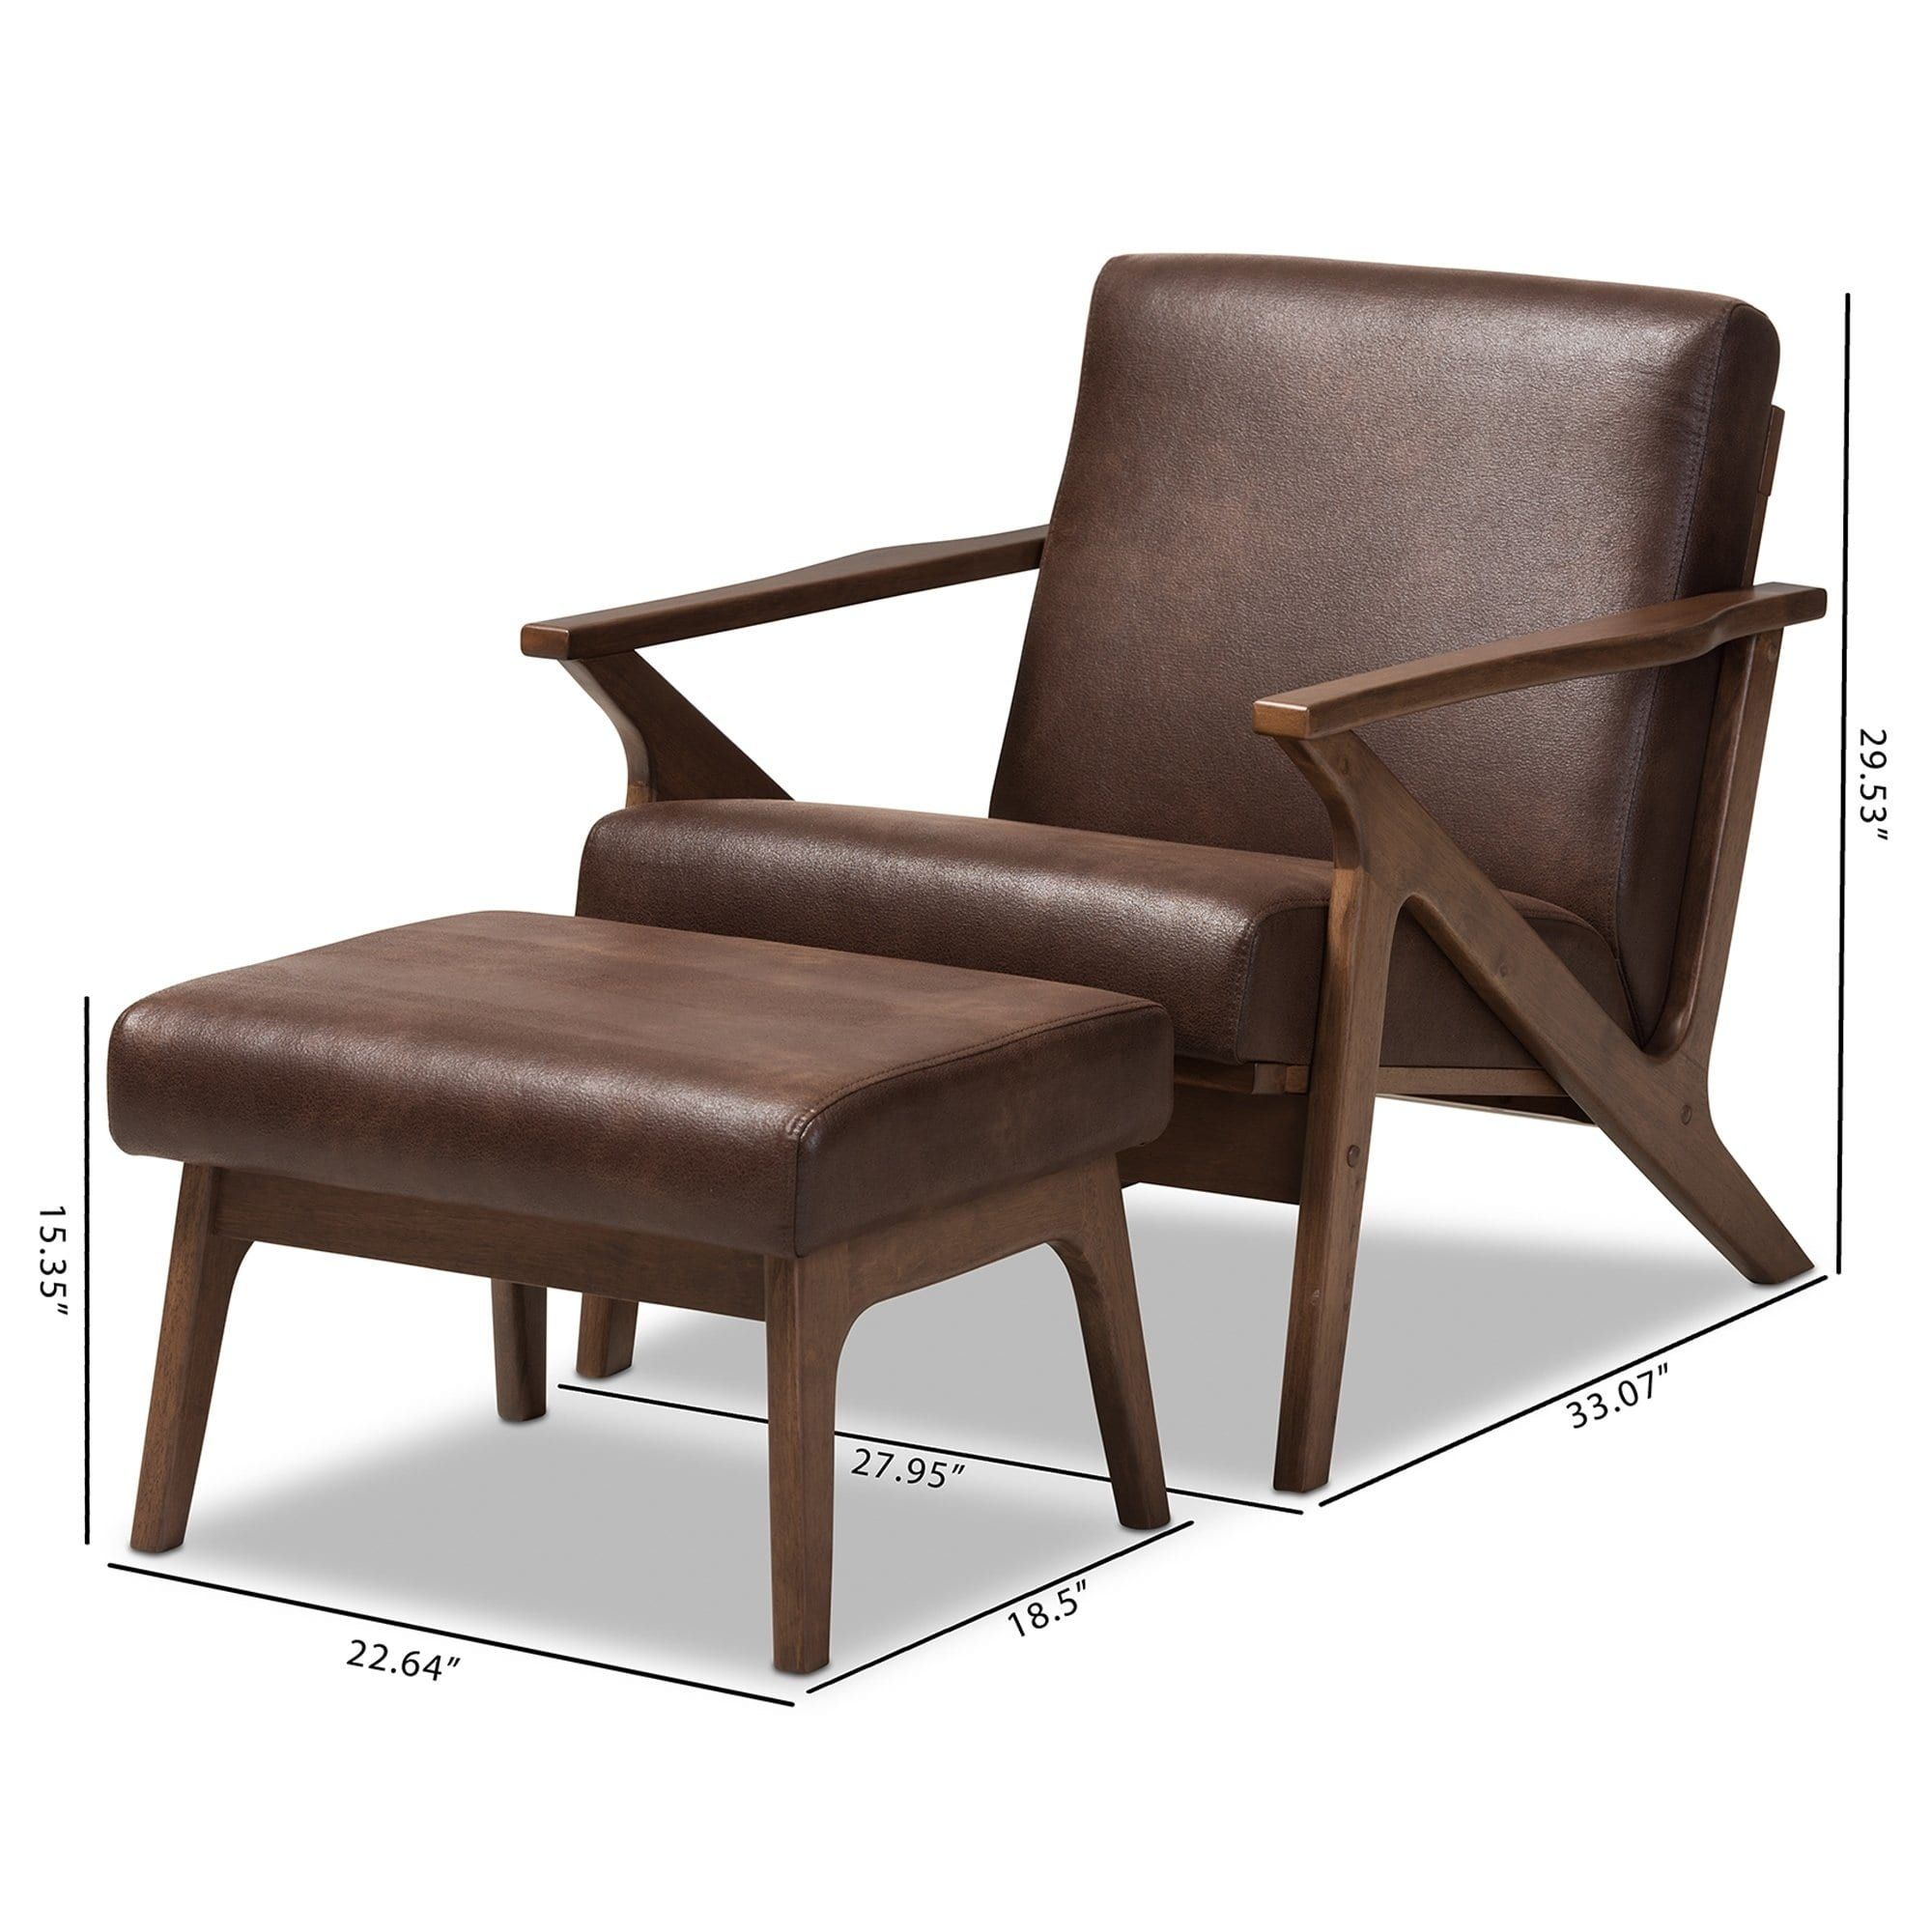 Remarkable Mid Century Lounge Chair And Ottoman Set By Baxton Studio Gmtry Best Dining Table And Chair Ideas Images Gmtryco